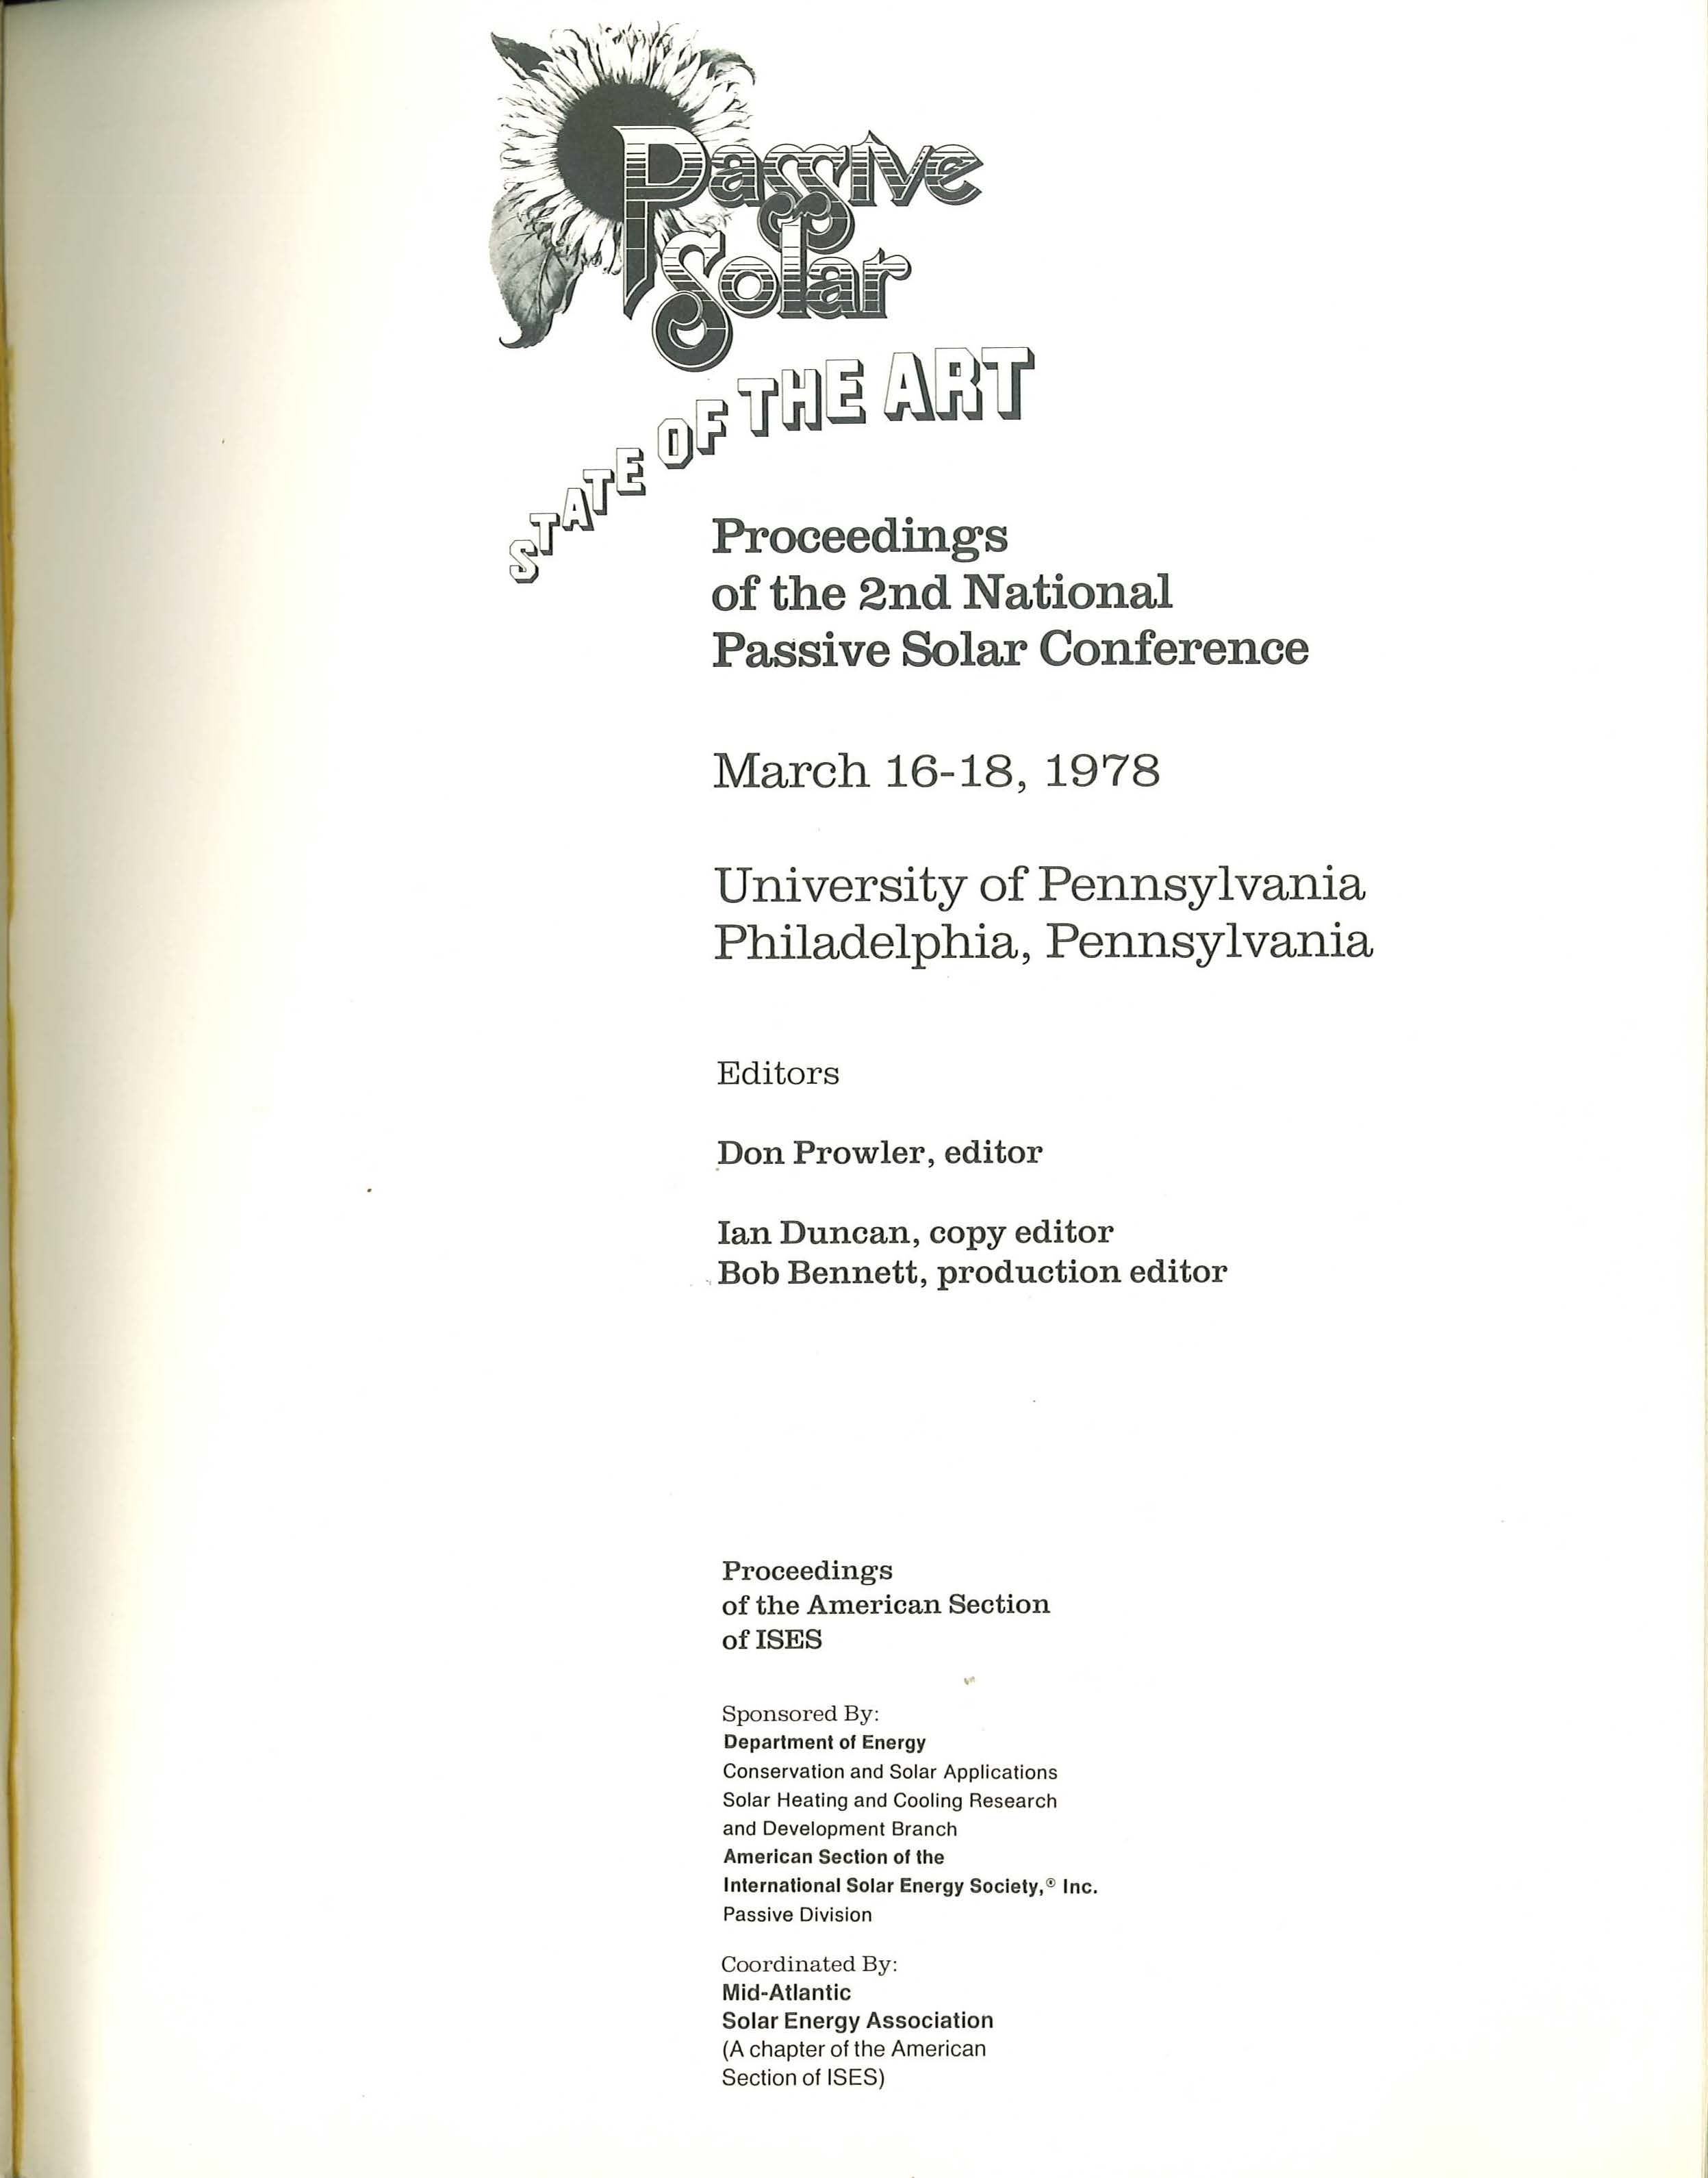 passive solar_proceedings of the 2nd national passive solar conference_1978_Page_2.jpg